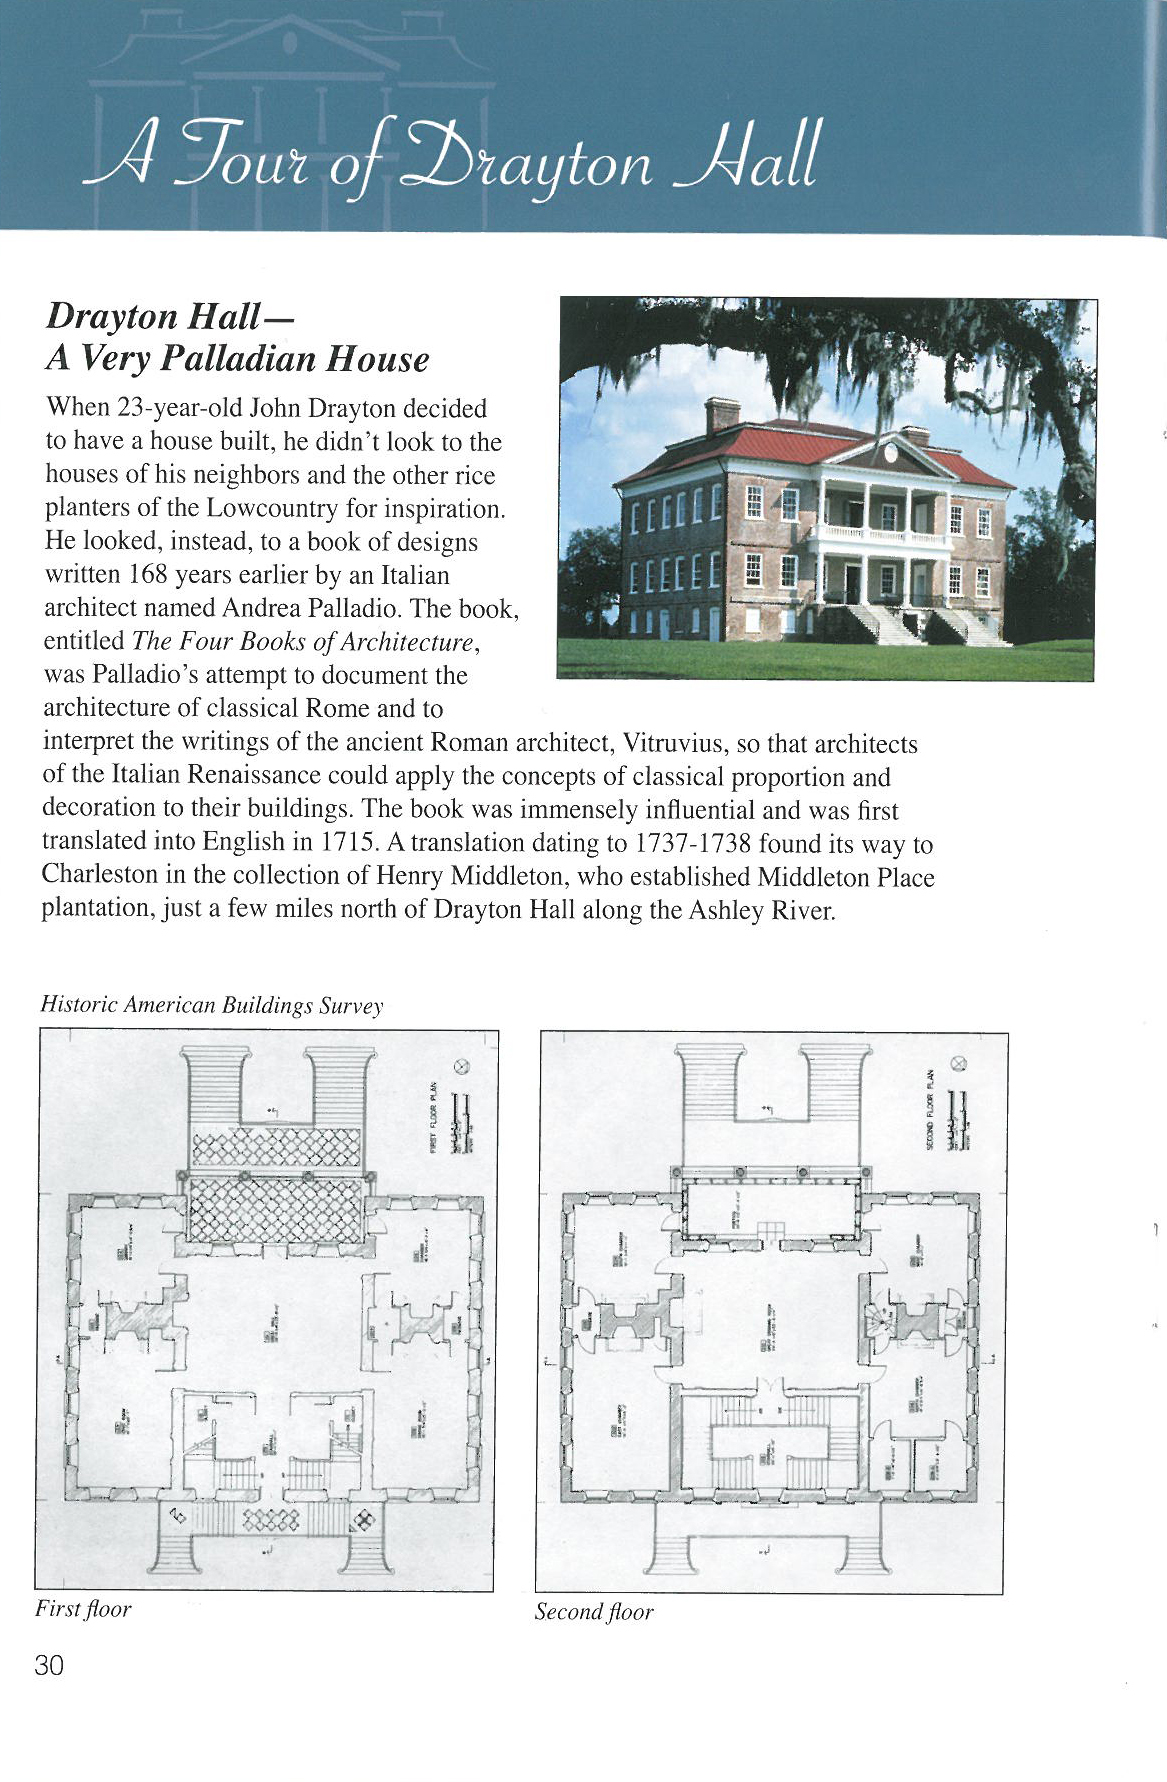 Floor Plans. Image courtesy of Drayton Hal & The National Trust for Historic Preservation.